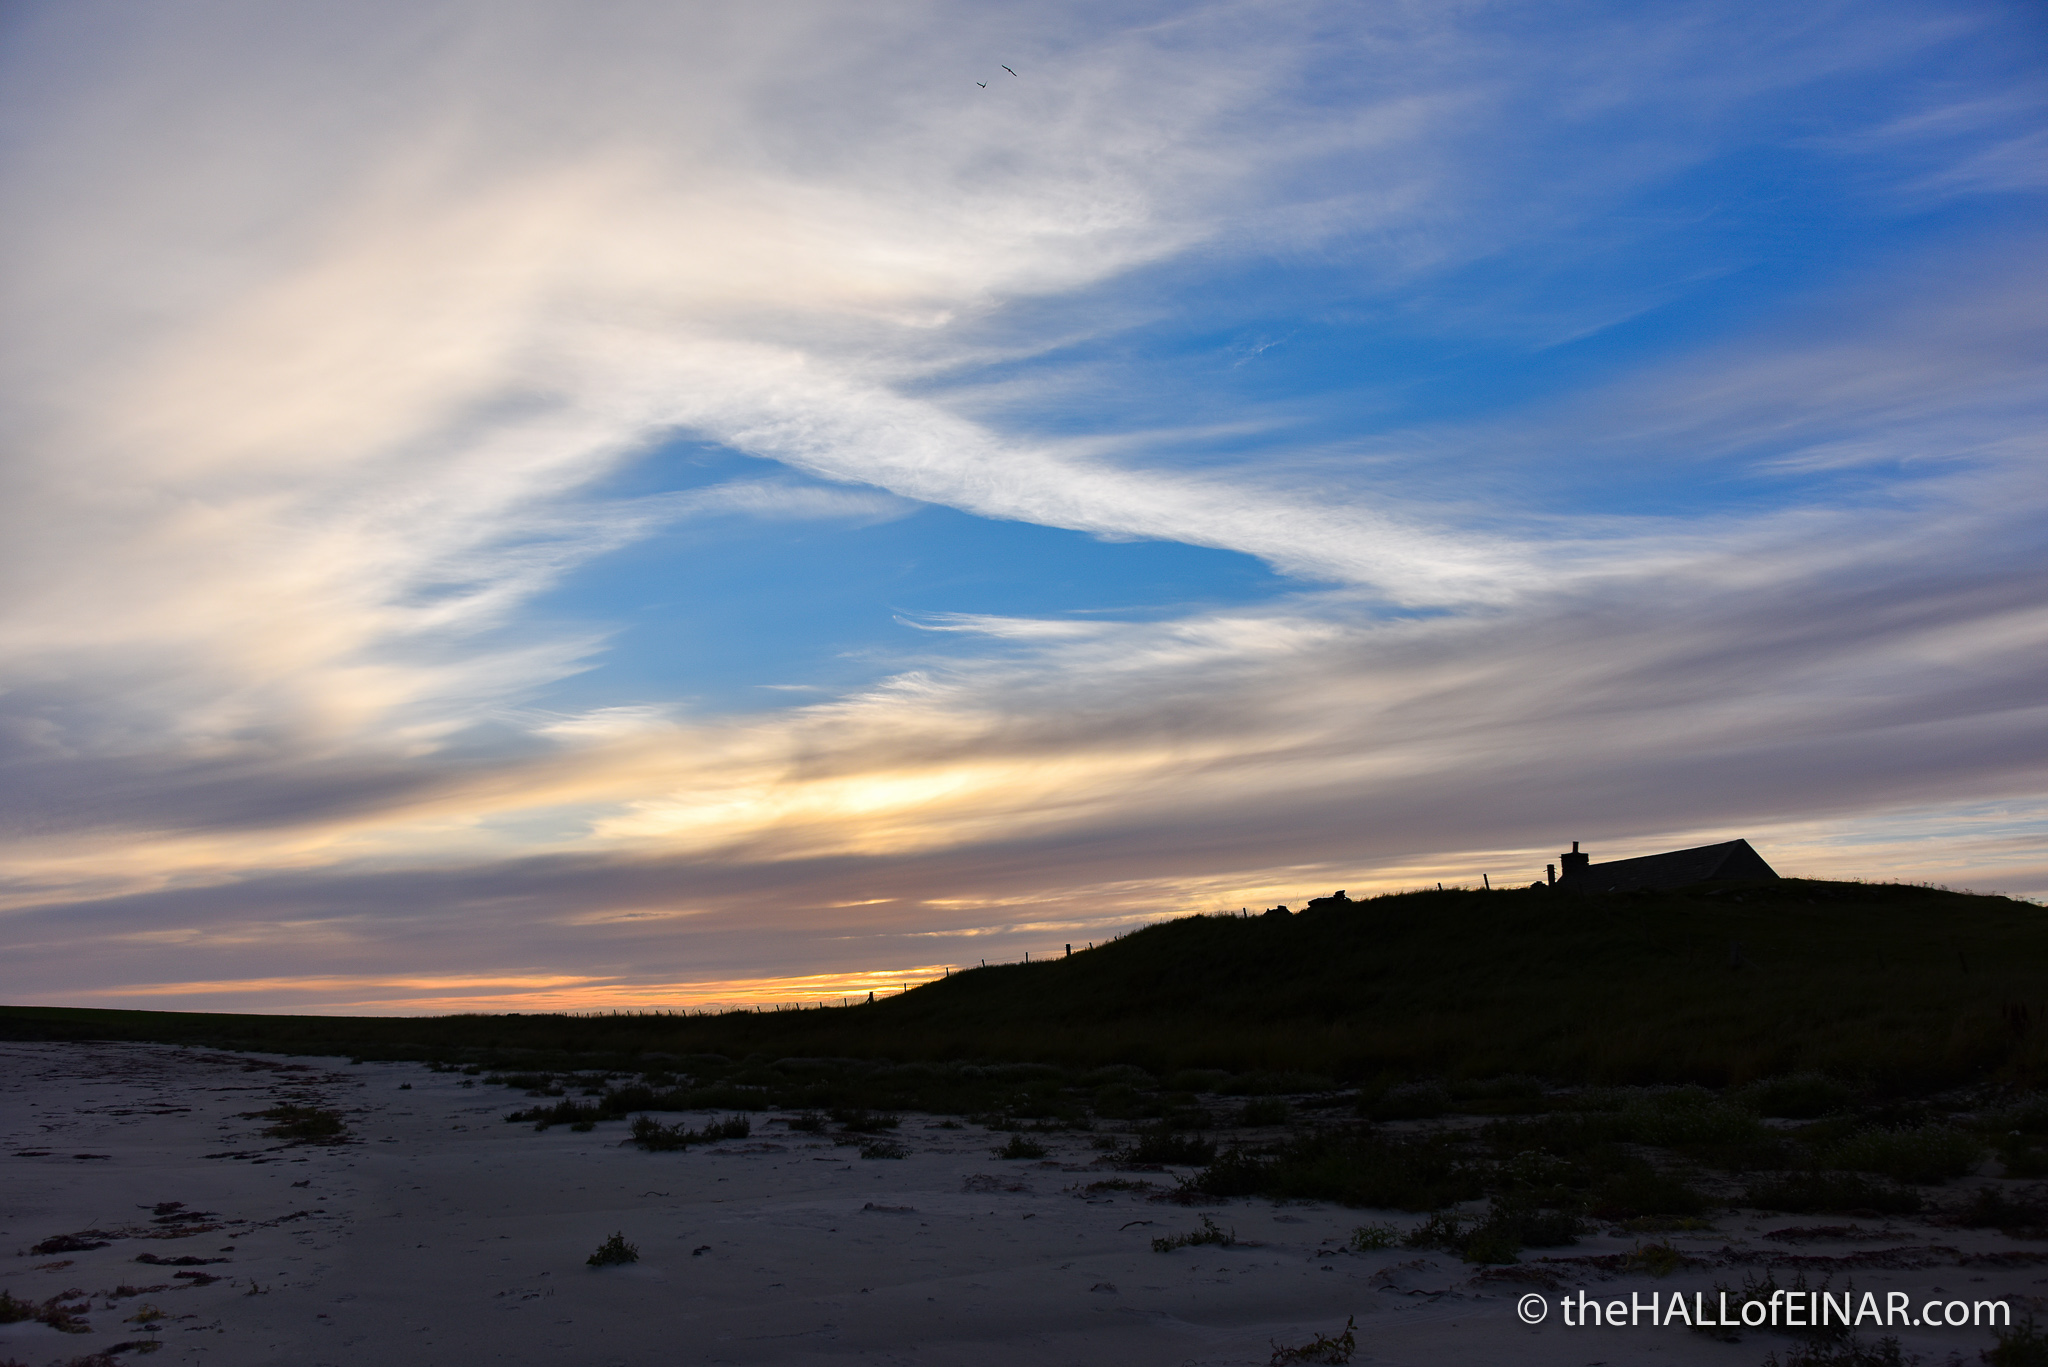 Sunset over Tafts - The Hall of Einar - photograph (c) 2016 David Bailey (not the)